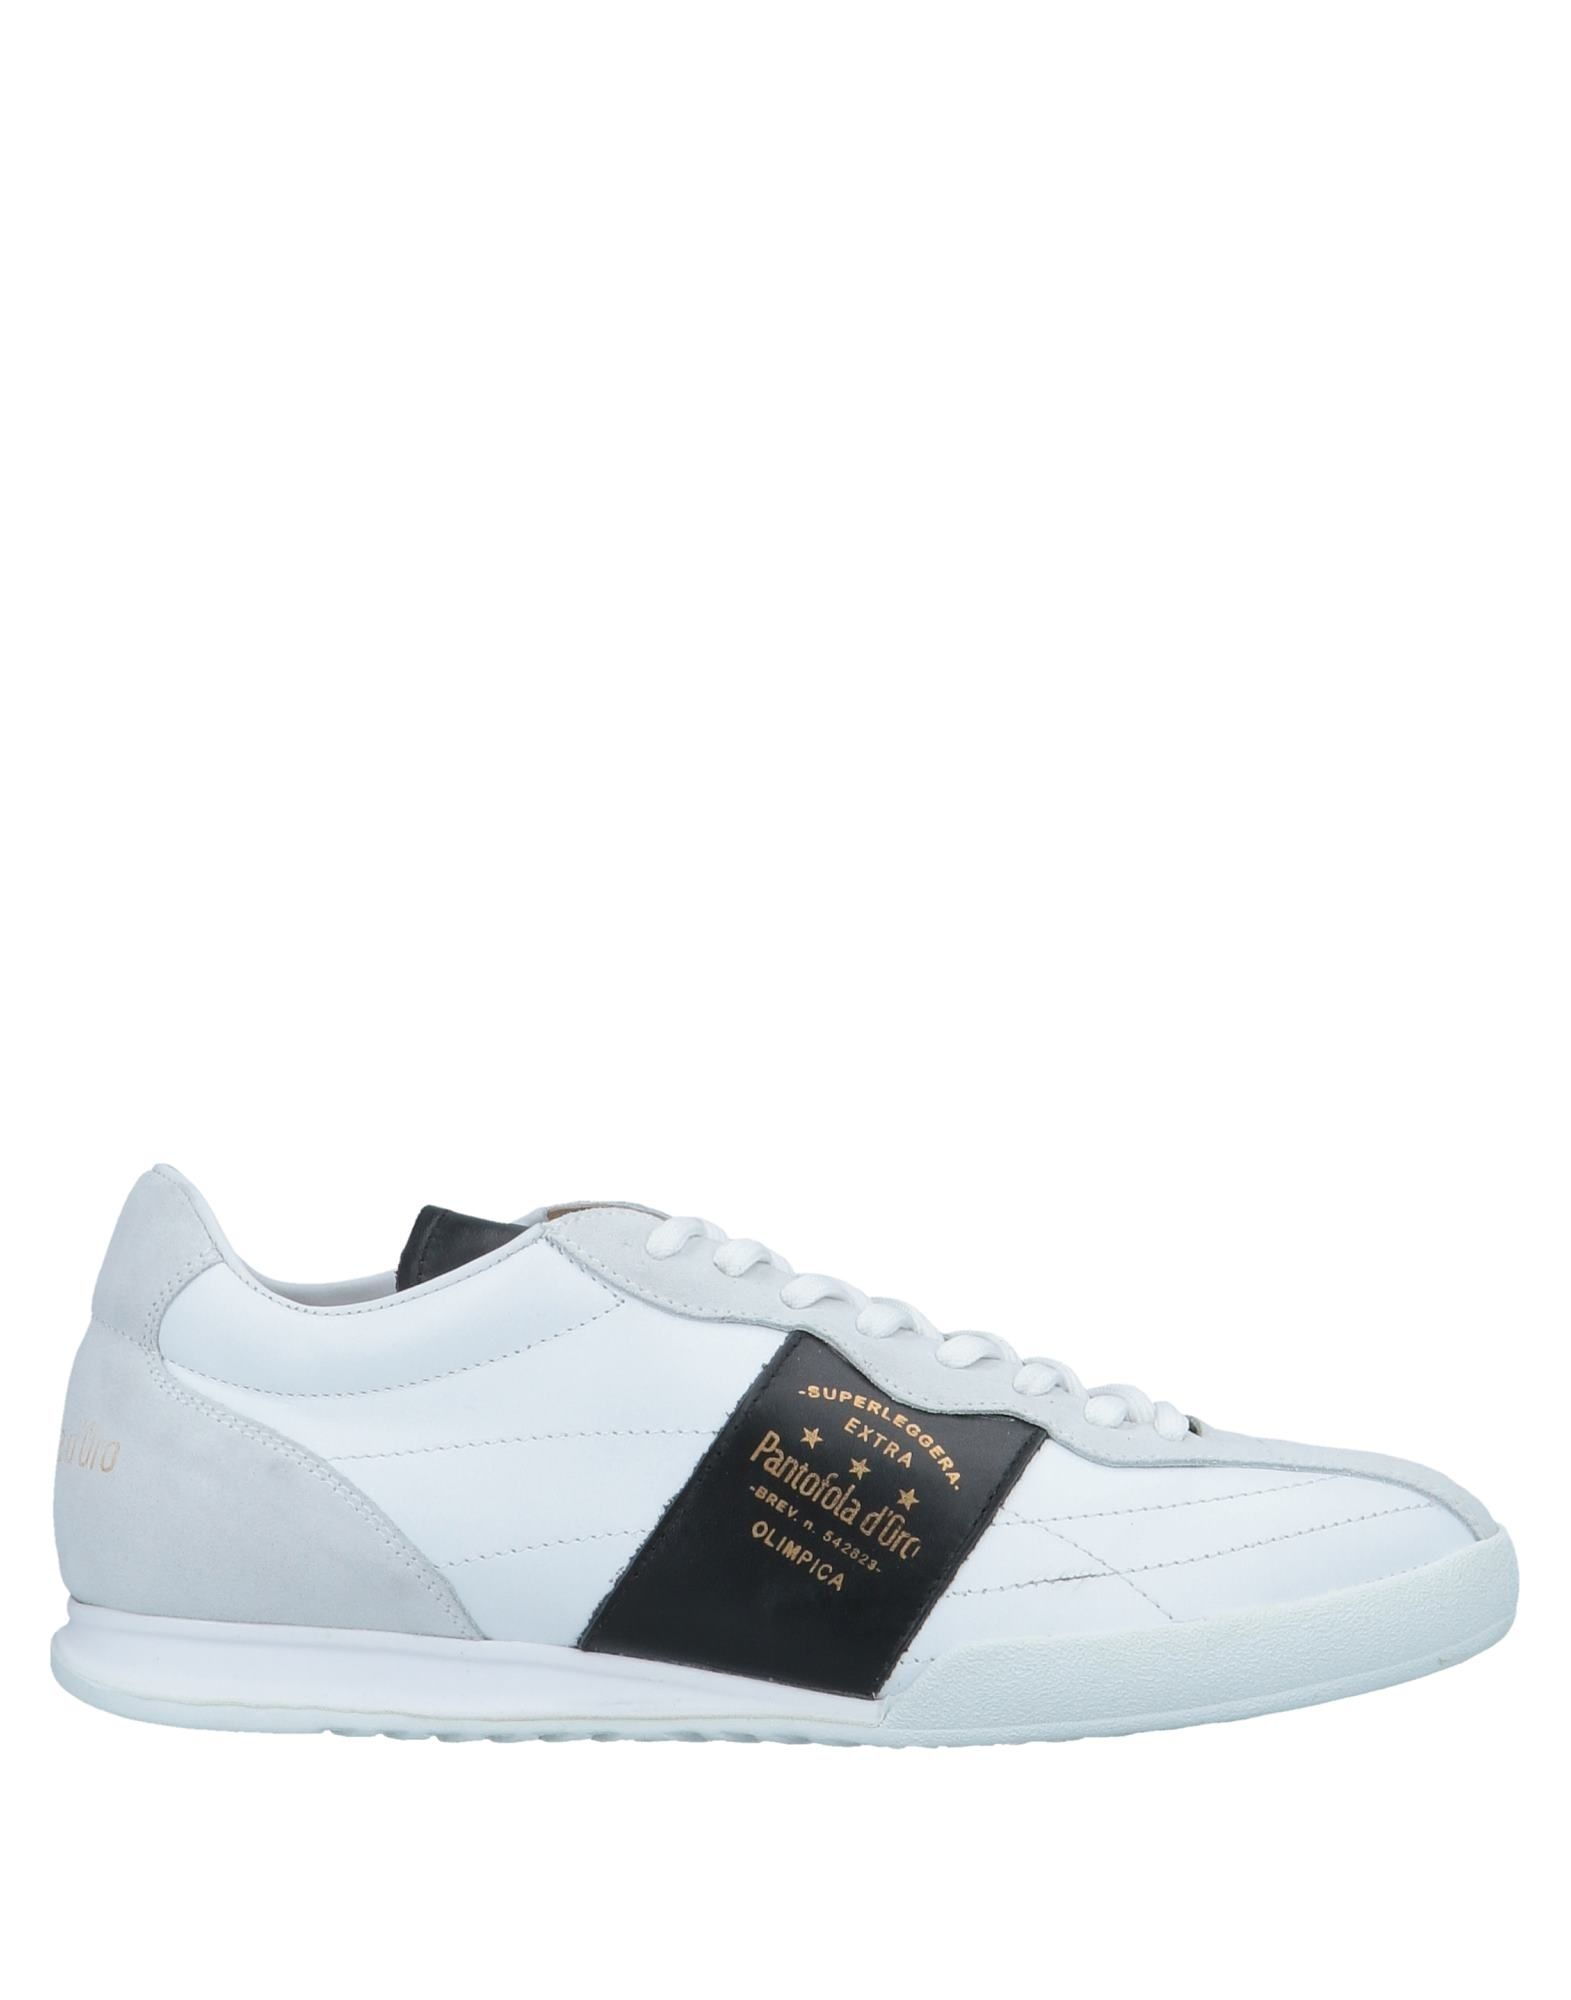 Pantofola D'oro Sneakers - Men Pantofola D'oro Sneakers - online on  Canada - Sneakers 11582116GU e5afd4